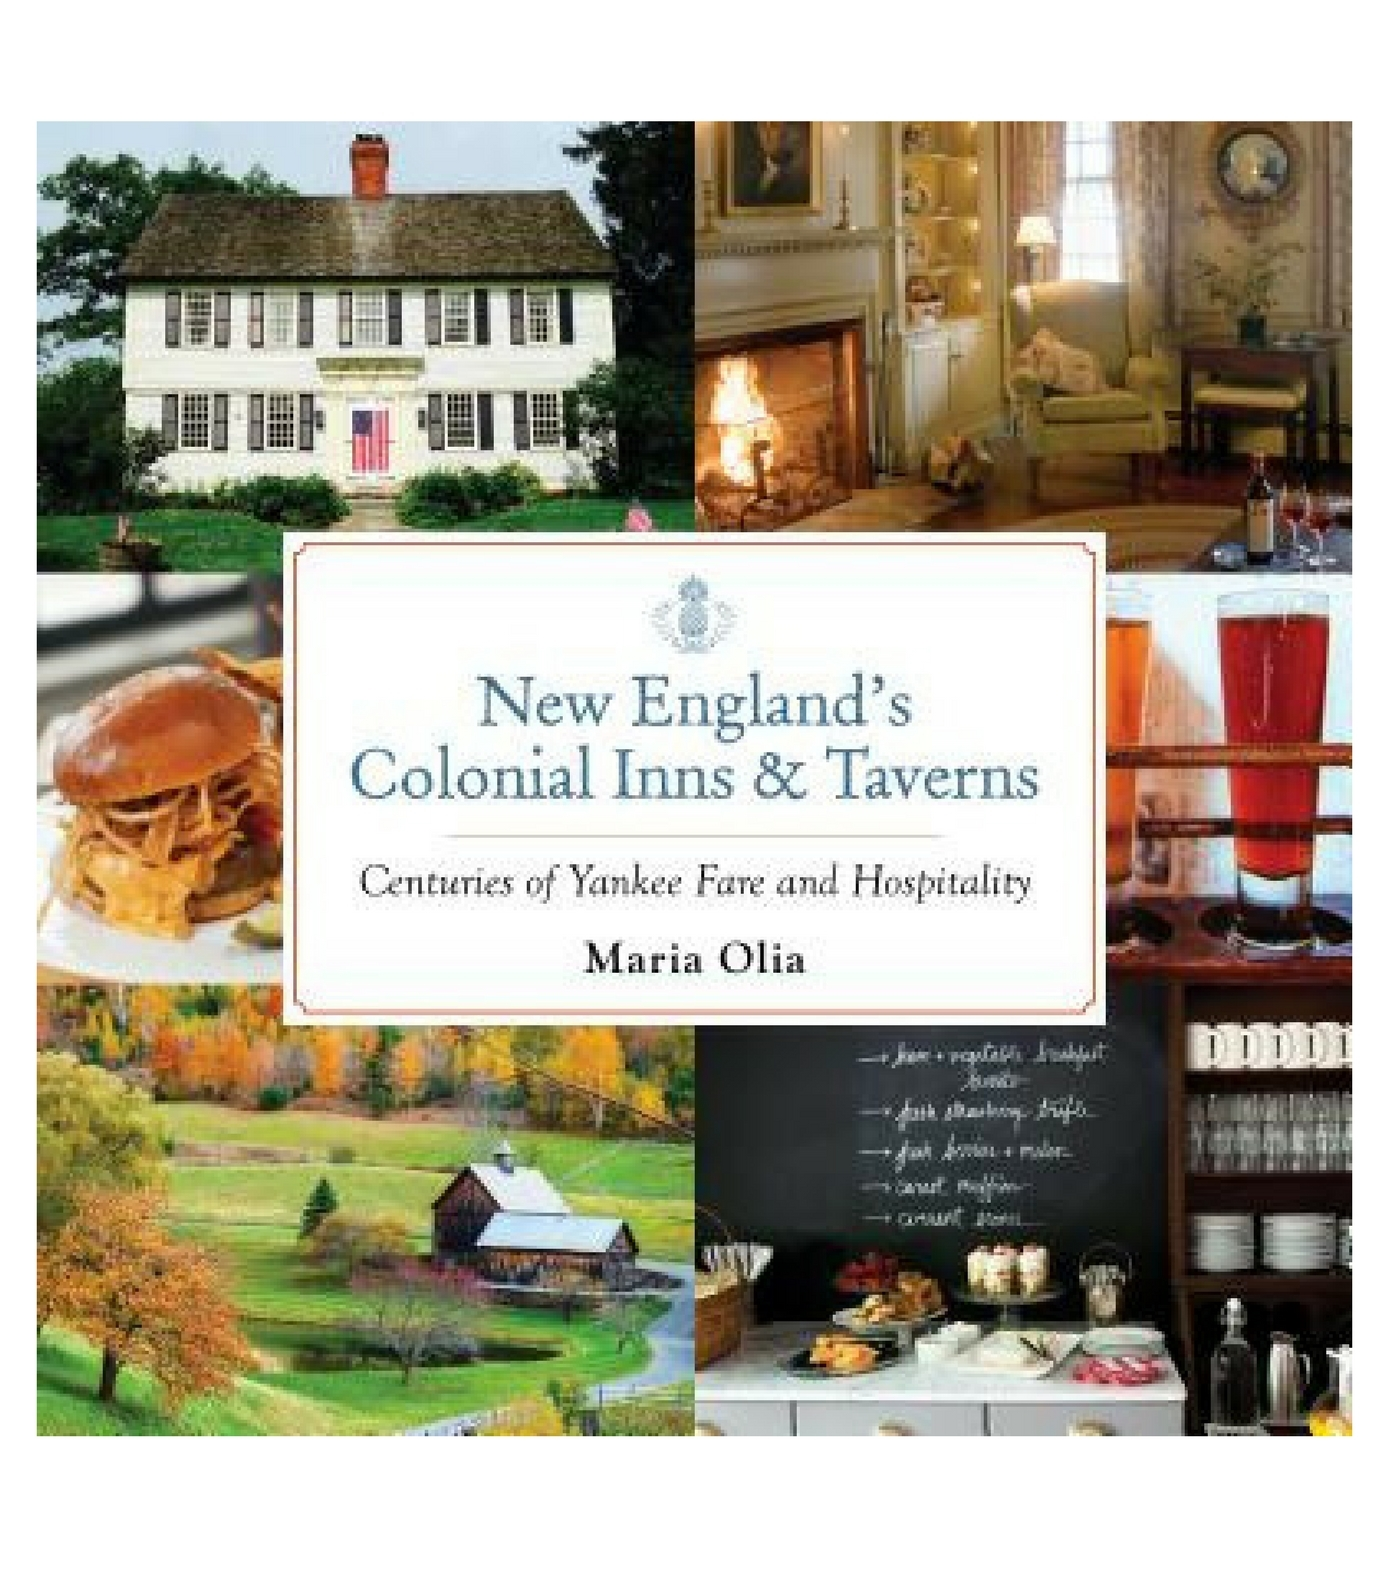 New England's Colonial Inns & Taverns